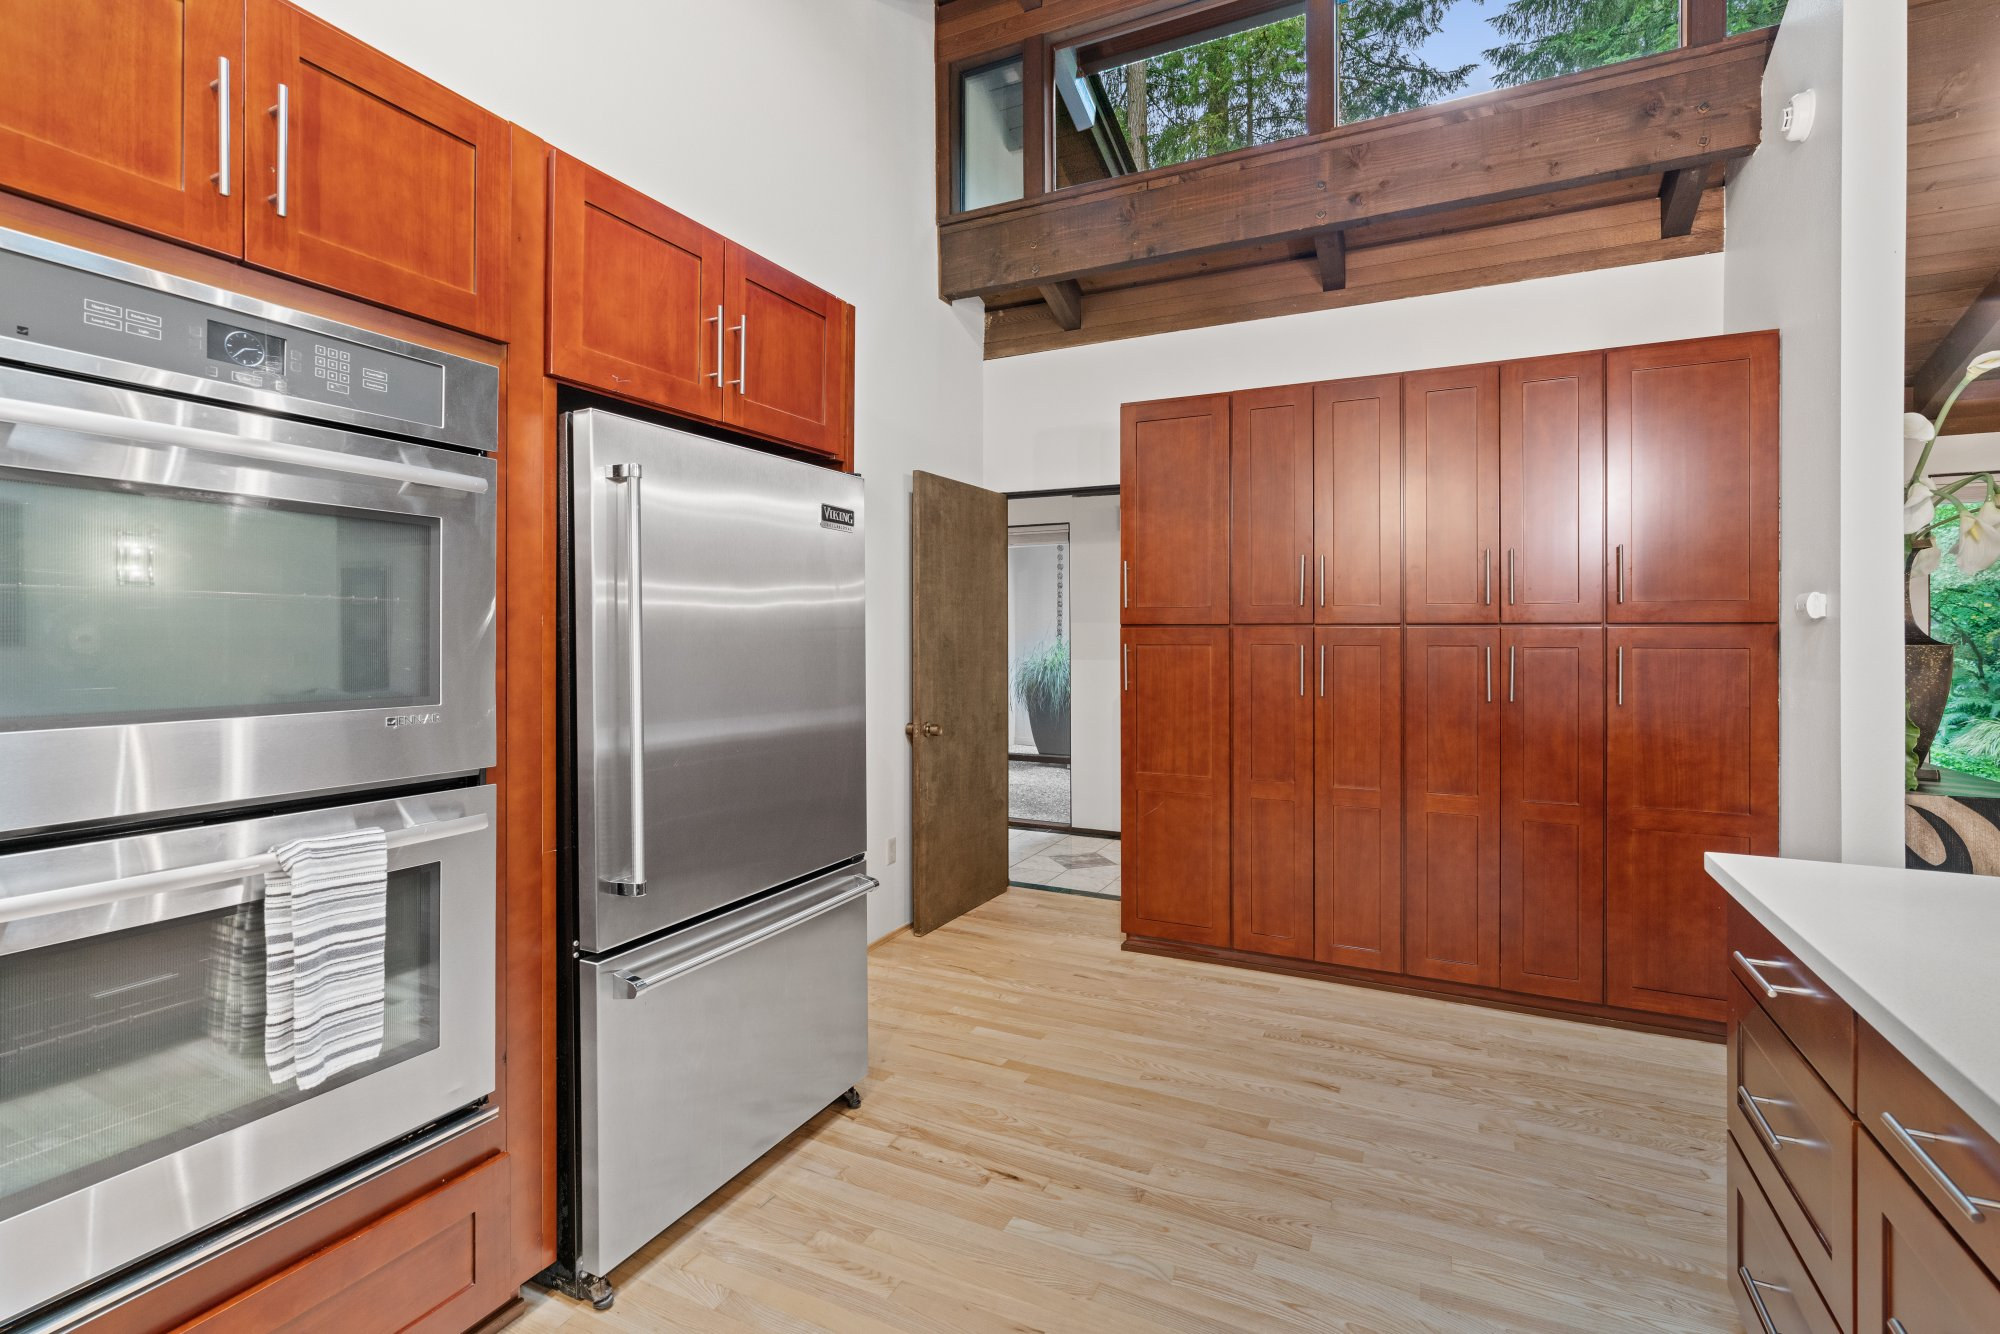 018-13431Northeast47thStreet-Bellevue-WA-98005-SMALL